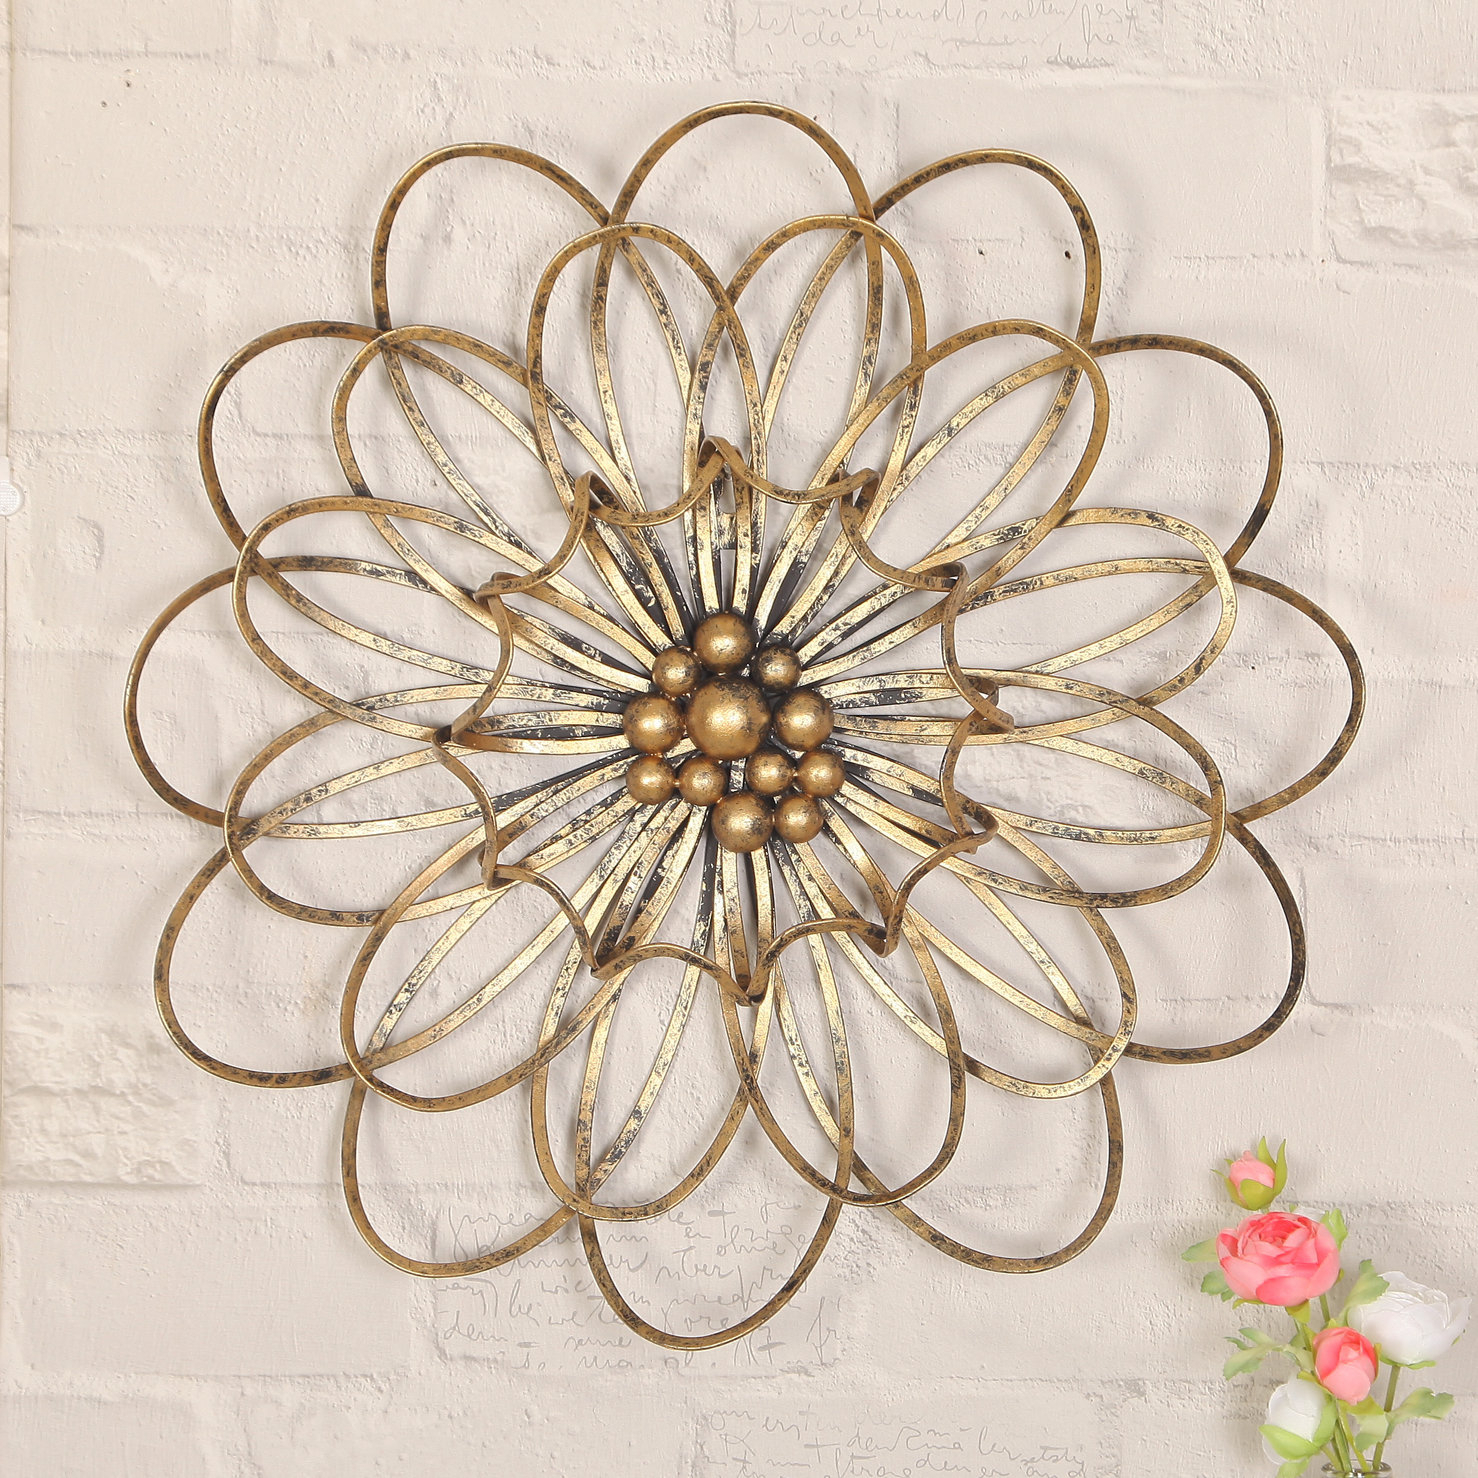 2019 Raheem Flowers Metal Wall Decor Intended For Adecotrading Flower Urban Design Metal Wall Décor & Reviews (View 2 of 20)